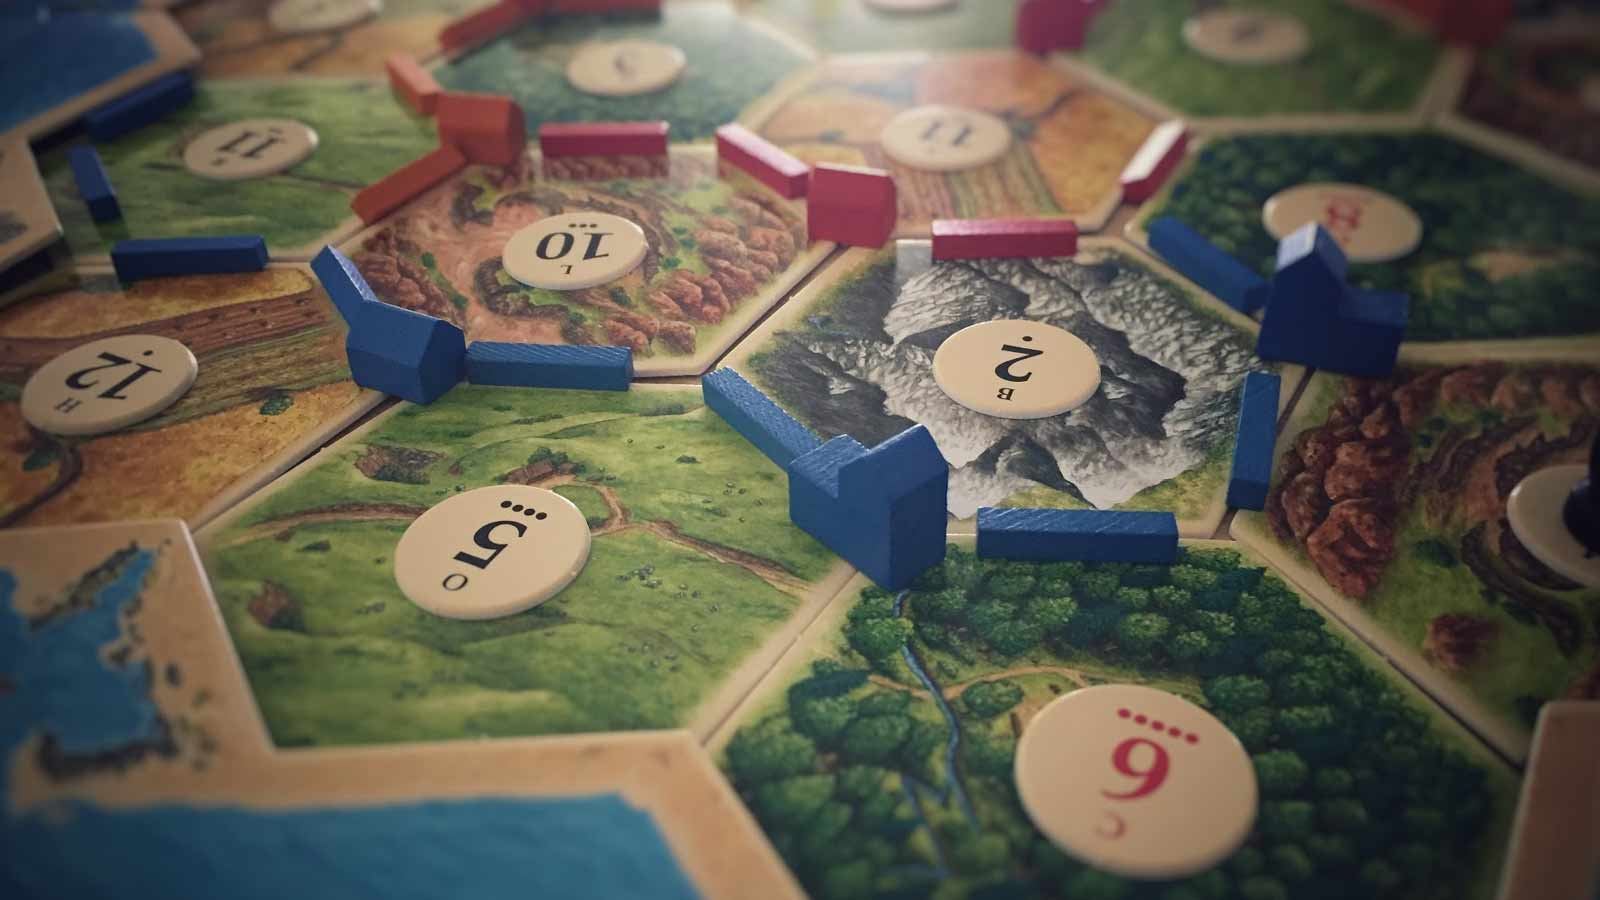 The Settlers of Catan board game with multiple settlements.